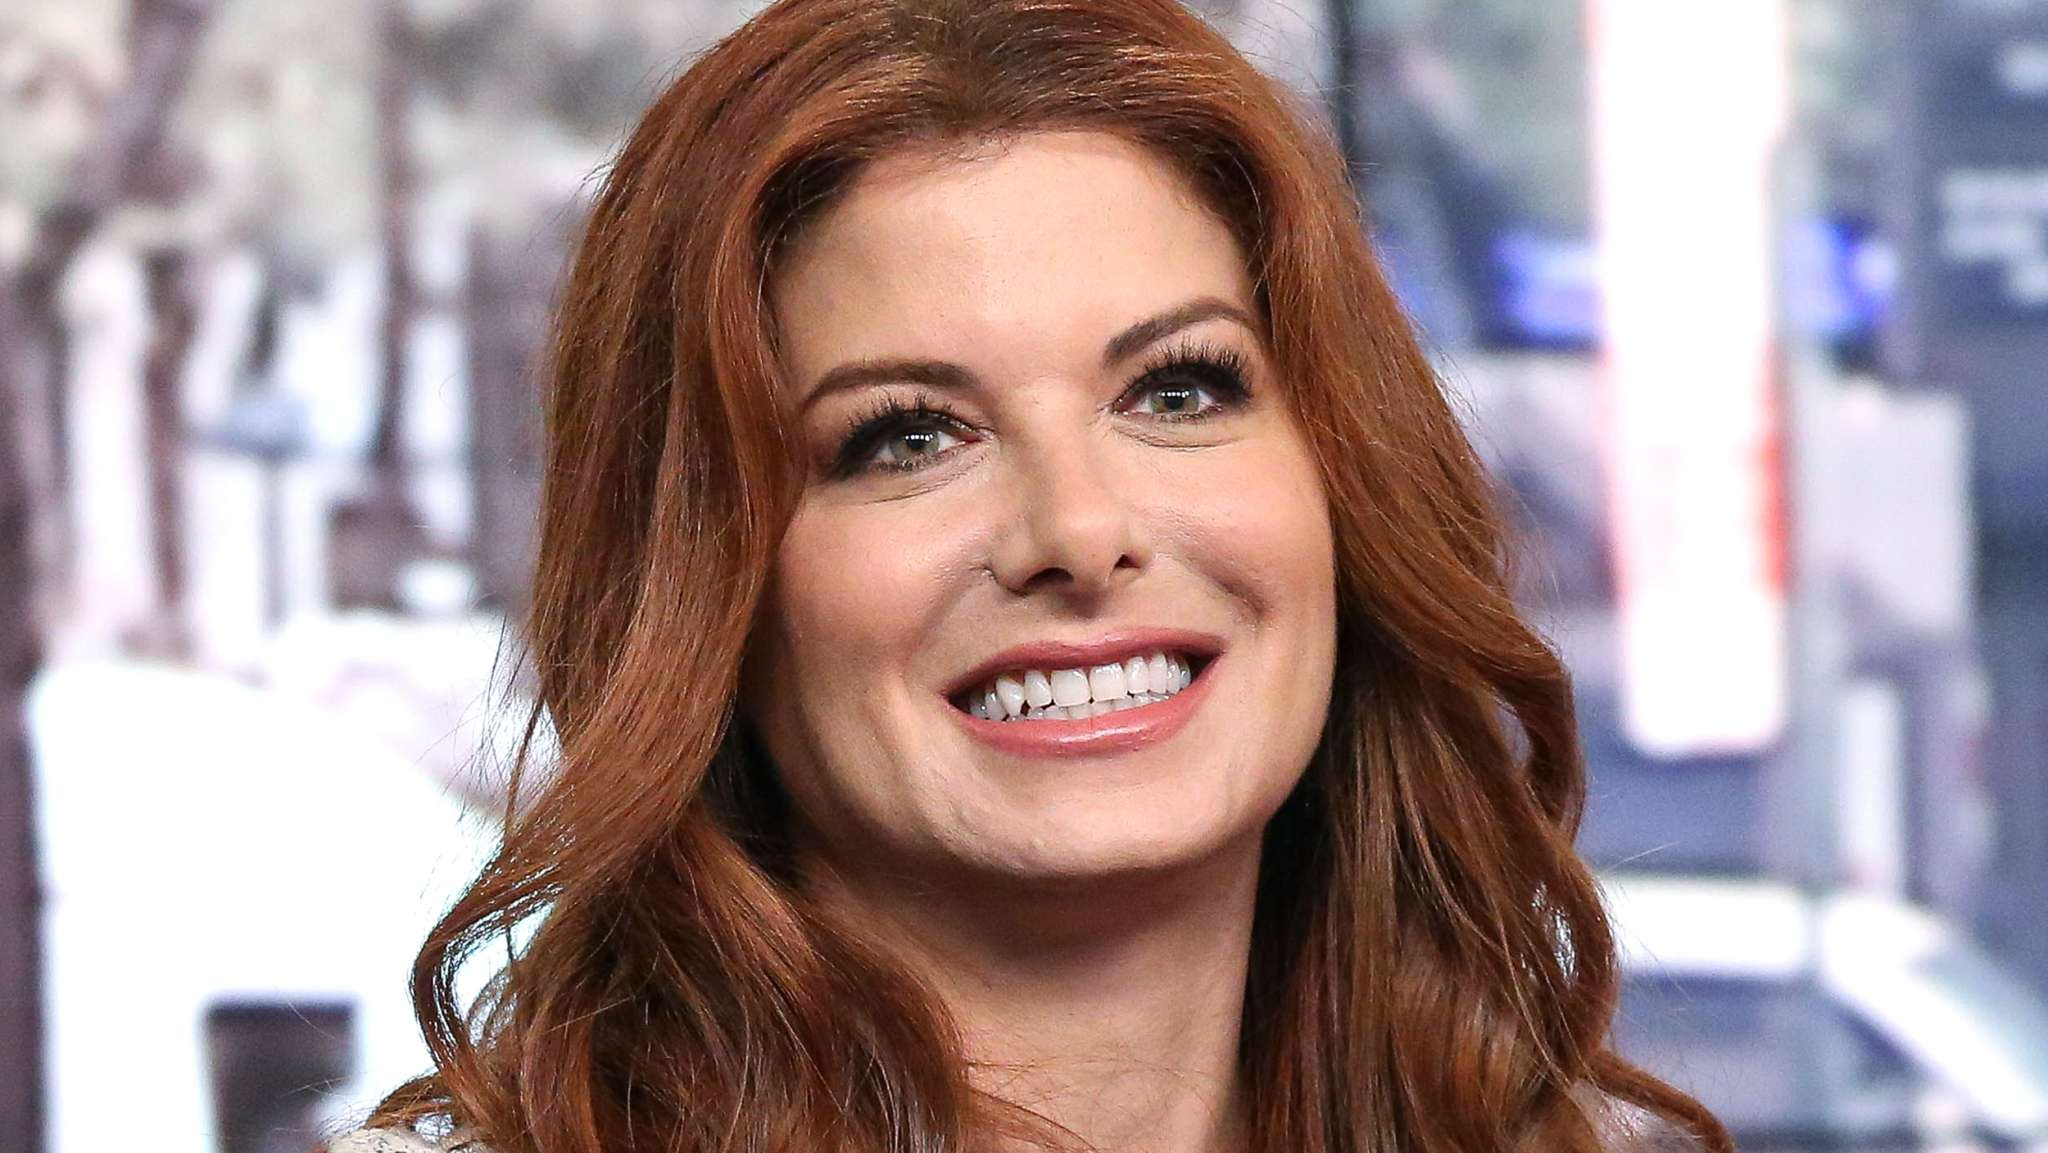 debra-messing-adresses-her-unrecognizable-face-in-new-photos-did-she-get-plastic-surgery